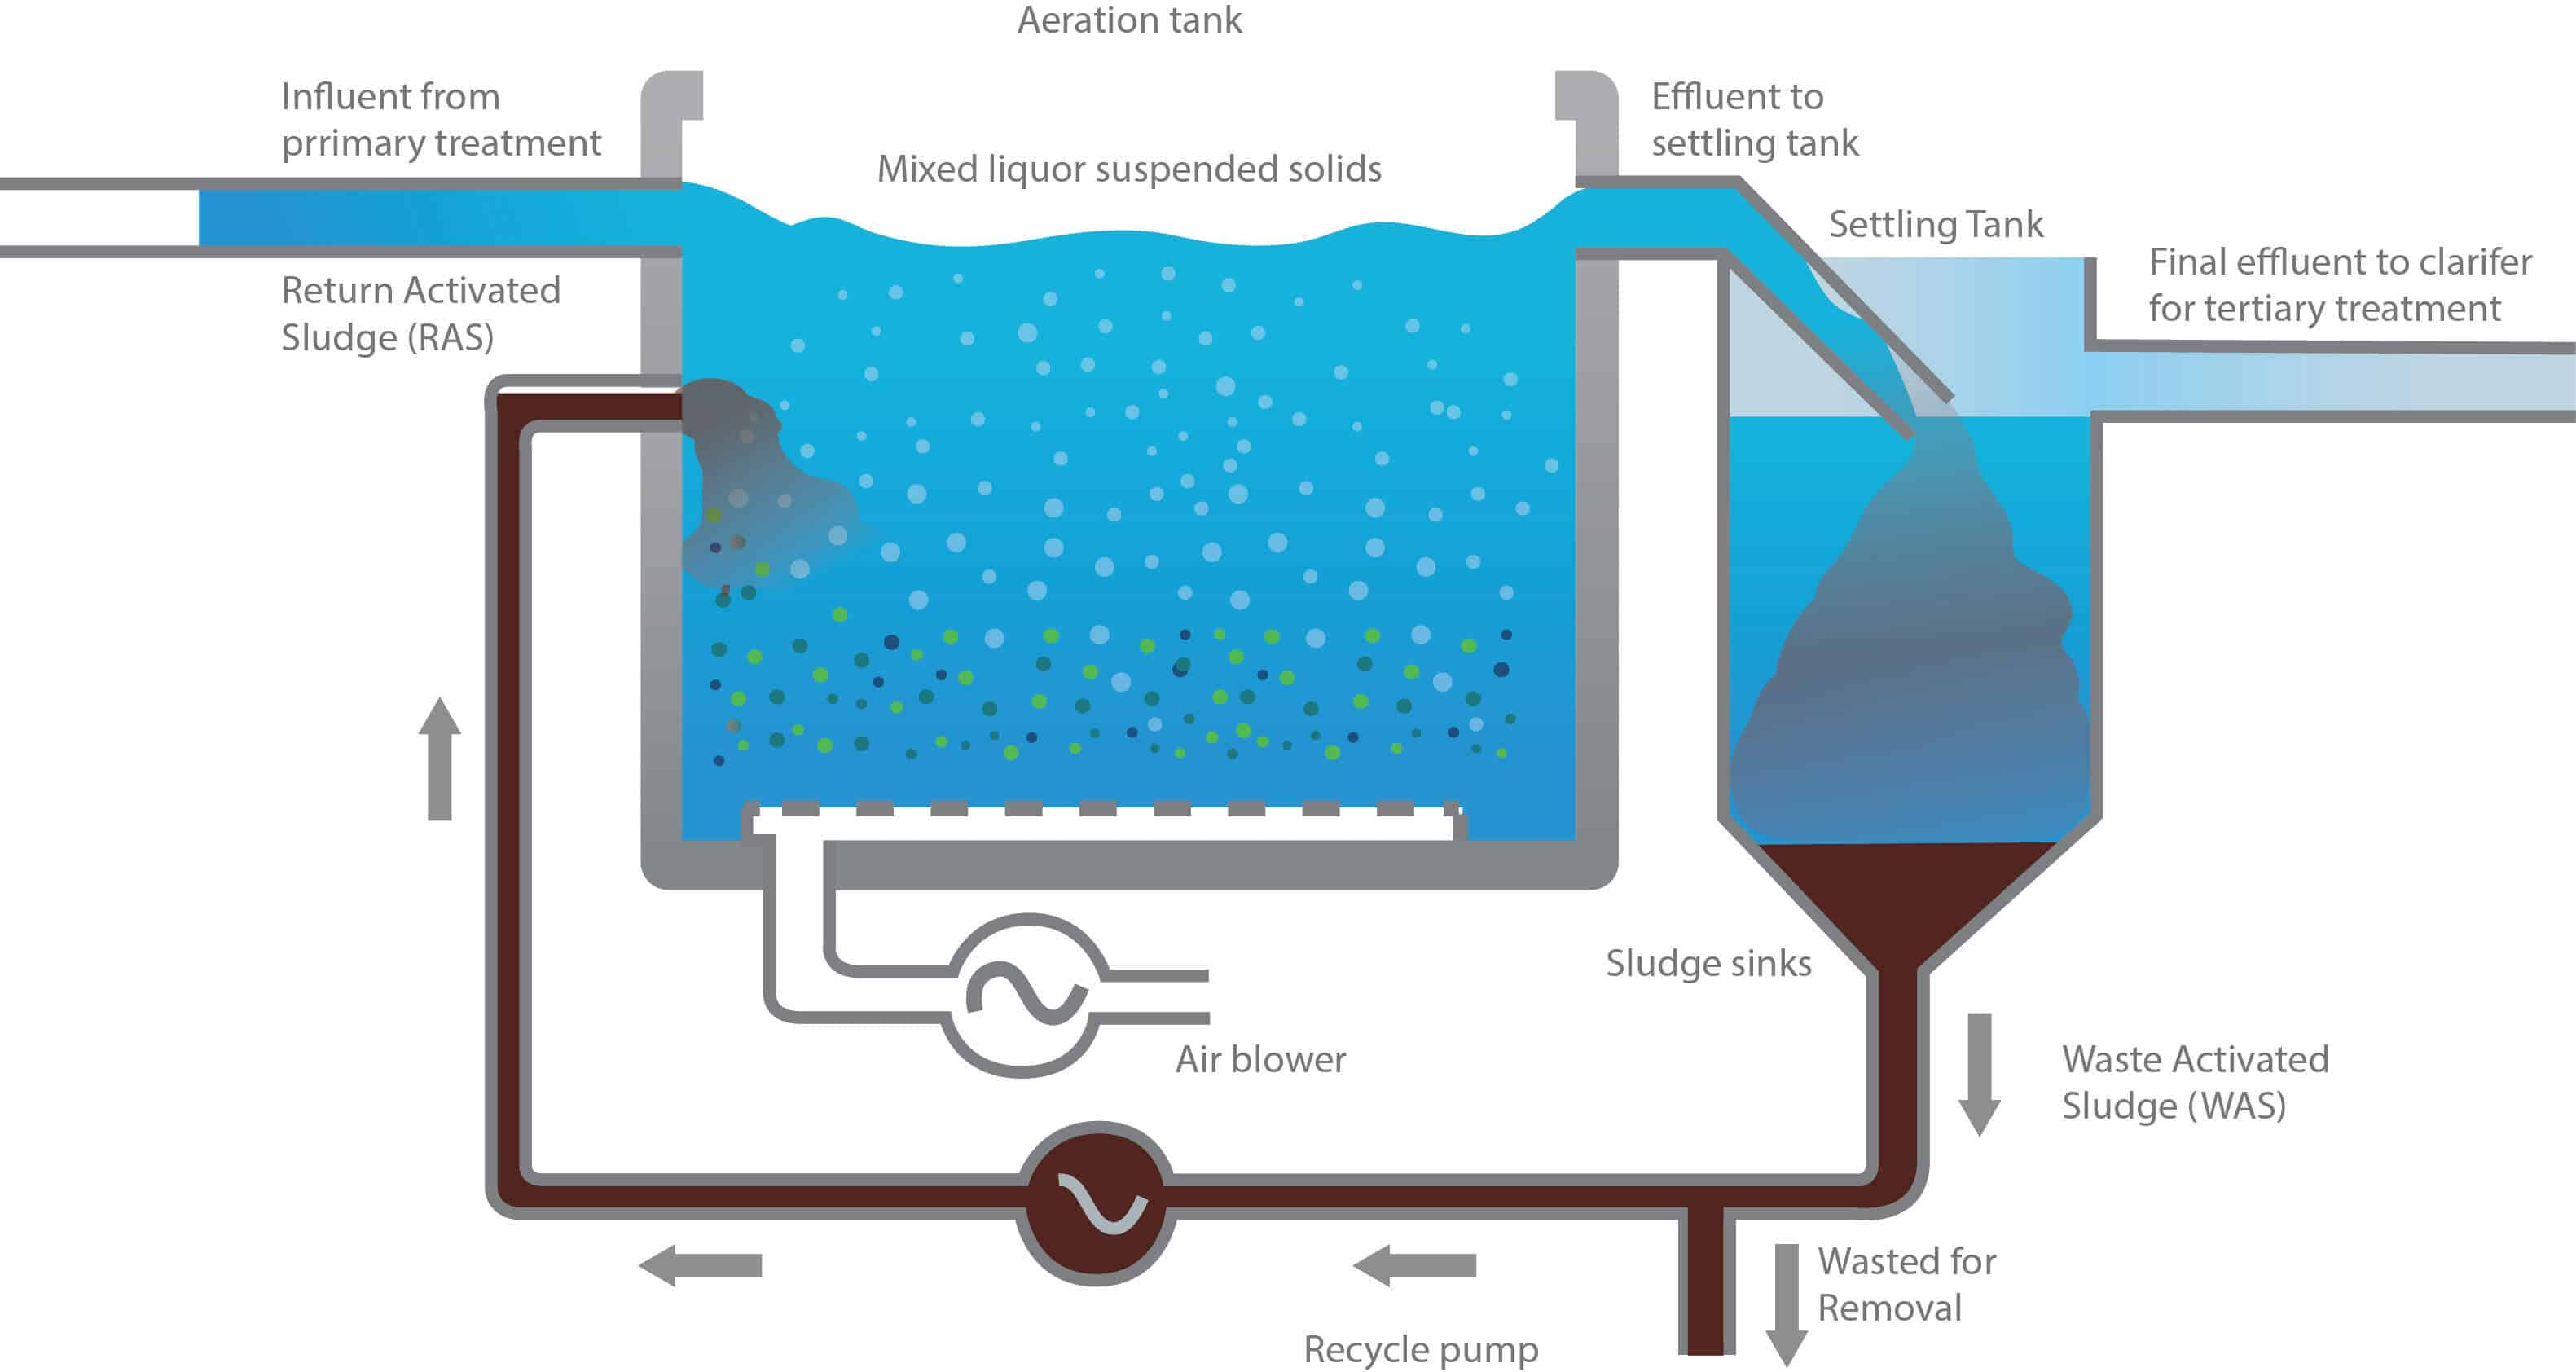 Wastewater revised